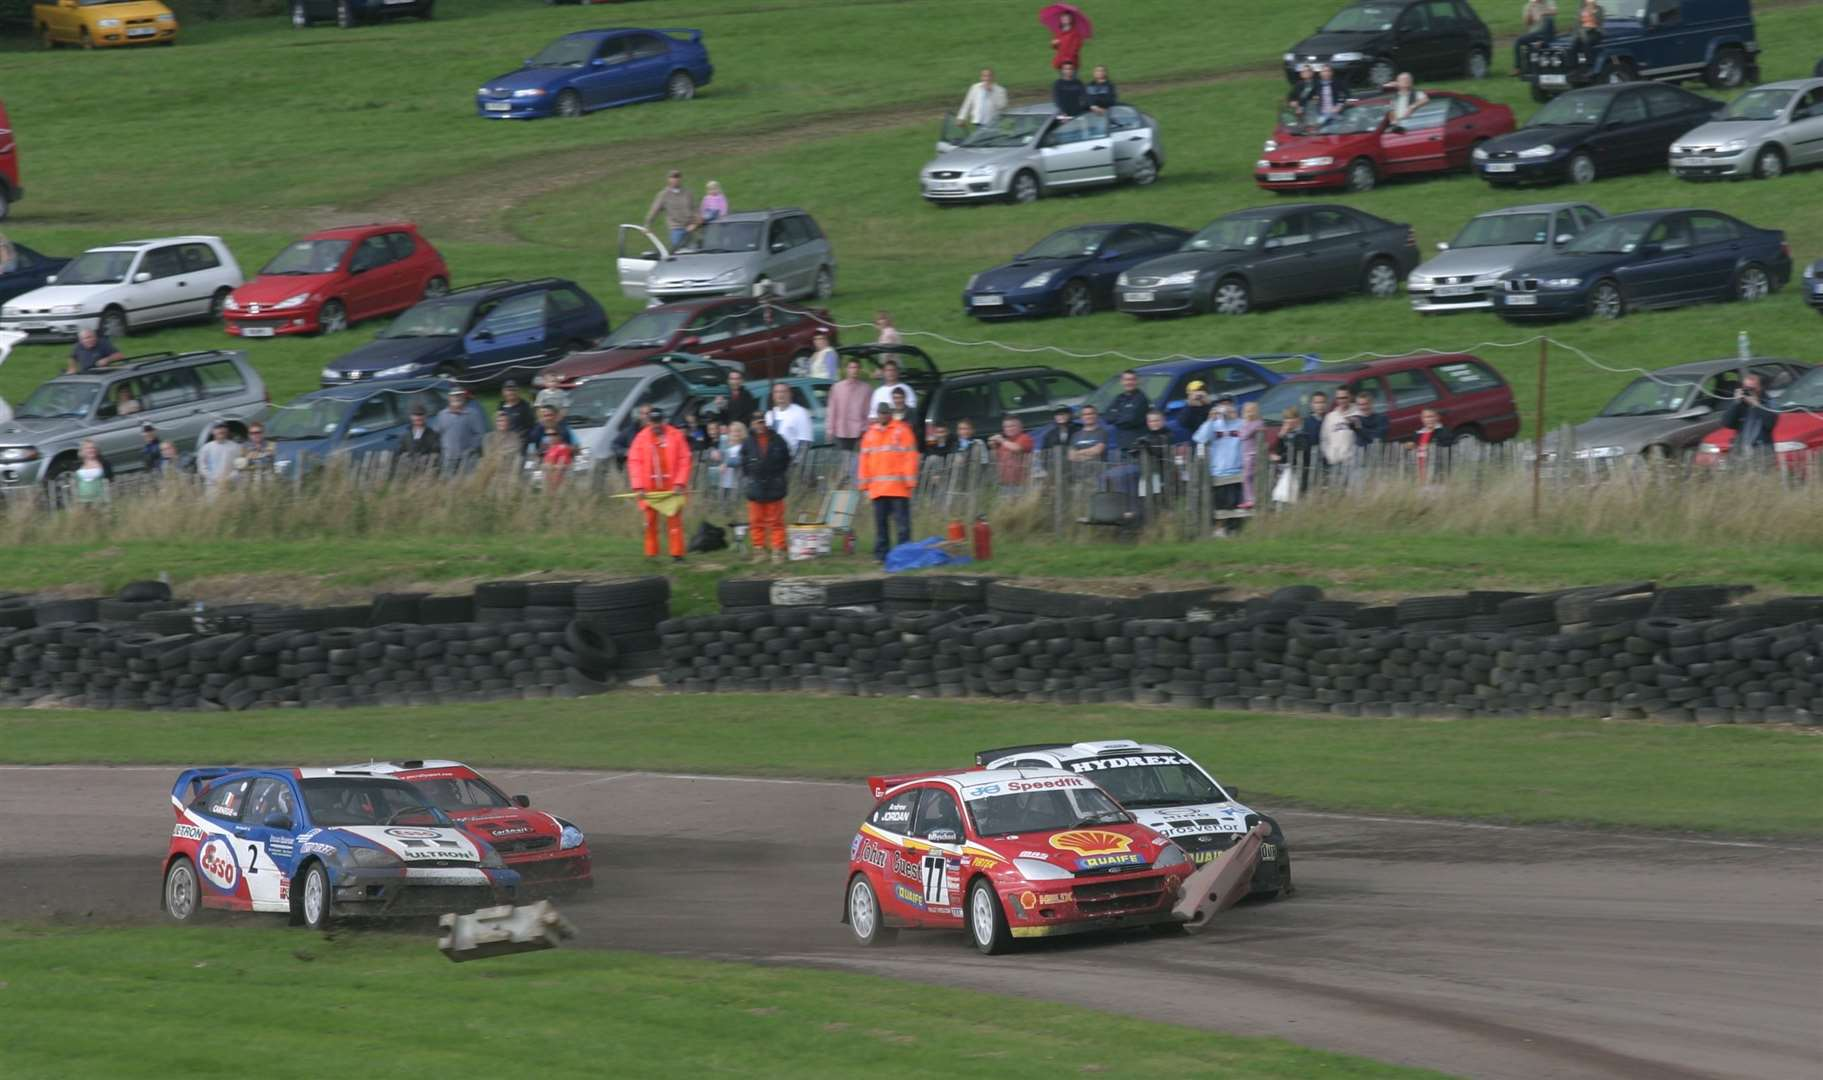 Andrew Jordan (77) sends the course markers flying as he sweeps past Pat Doran, while Dermot Carnegie (2) and John McCluskey dispute fourth place in the British Rallycross 'A' final at Lydden in August 2006. Picture: Kerry Dunlop